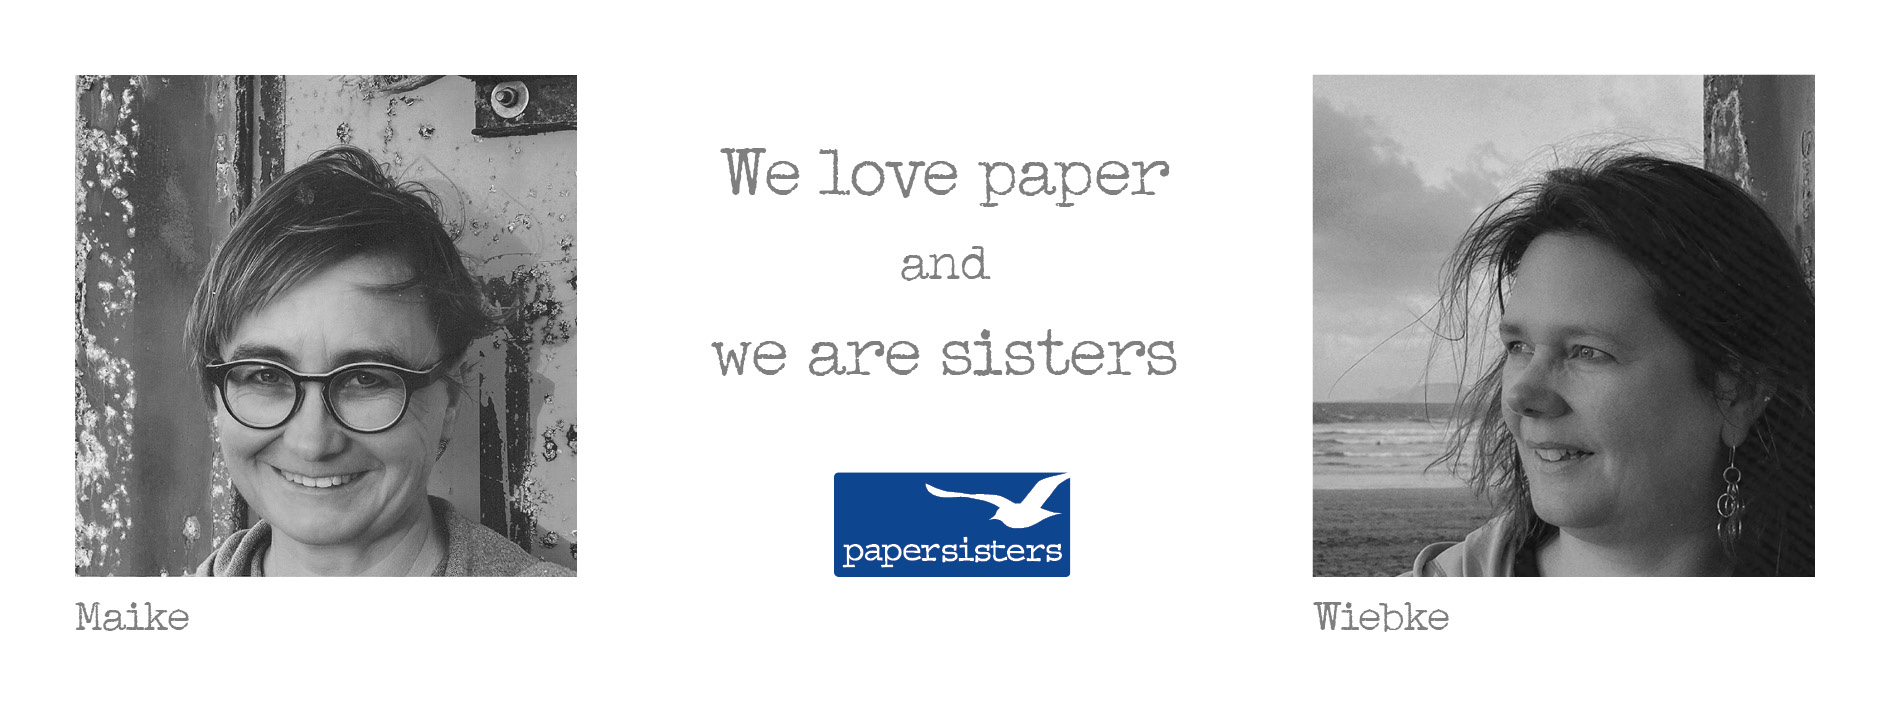 papersisters-about-us